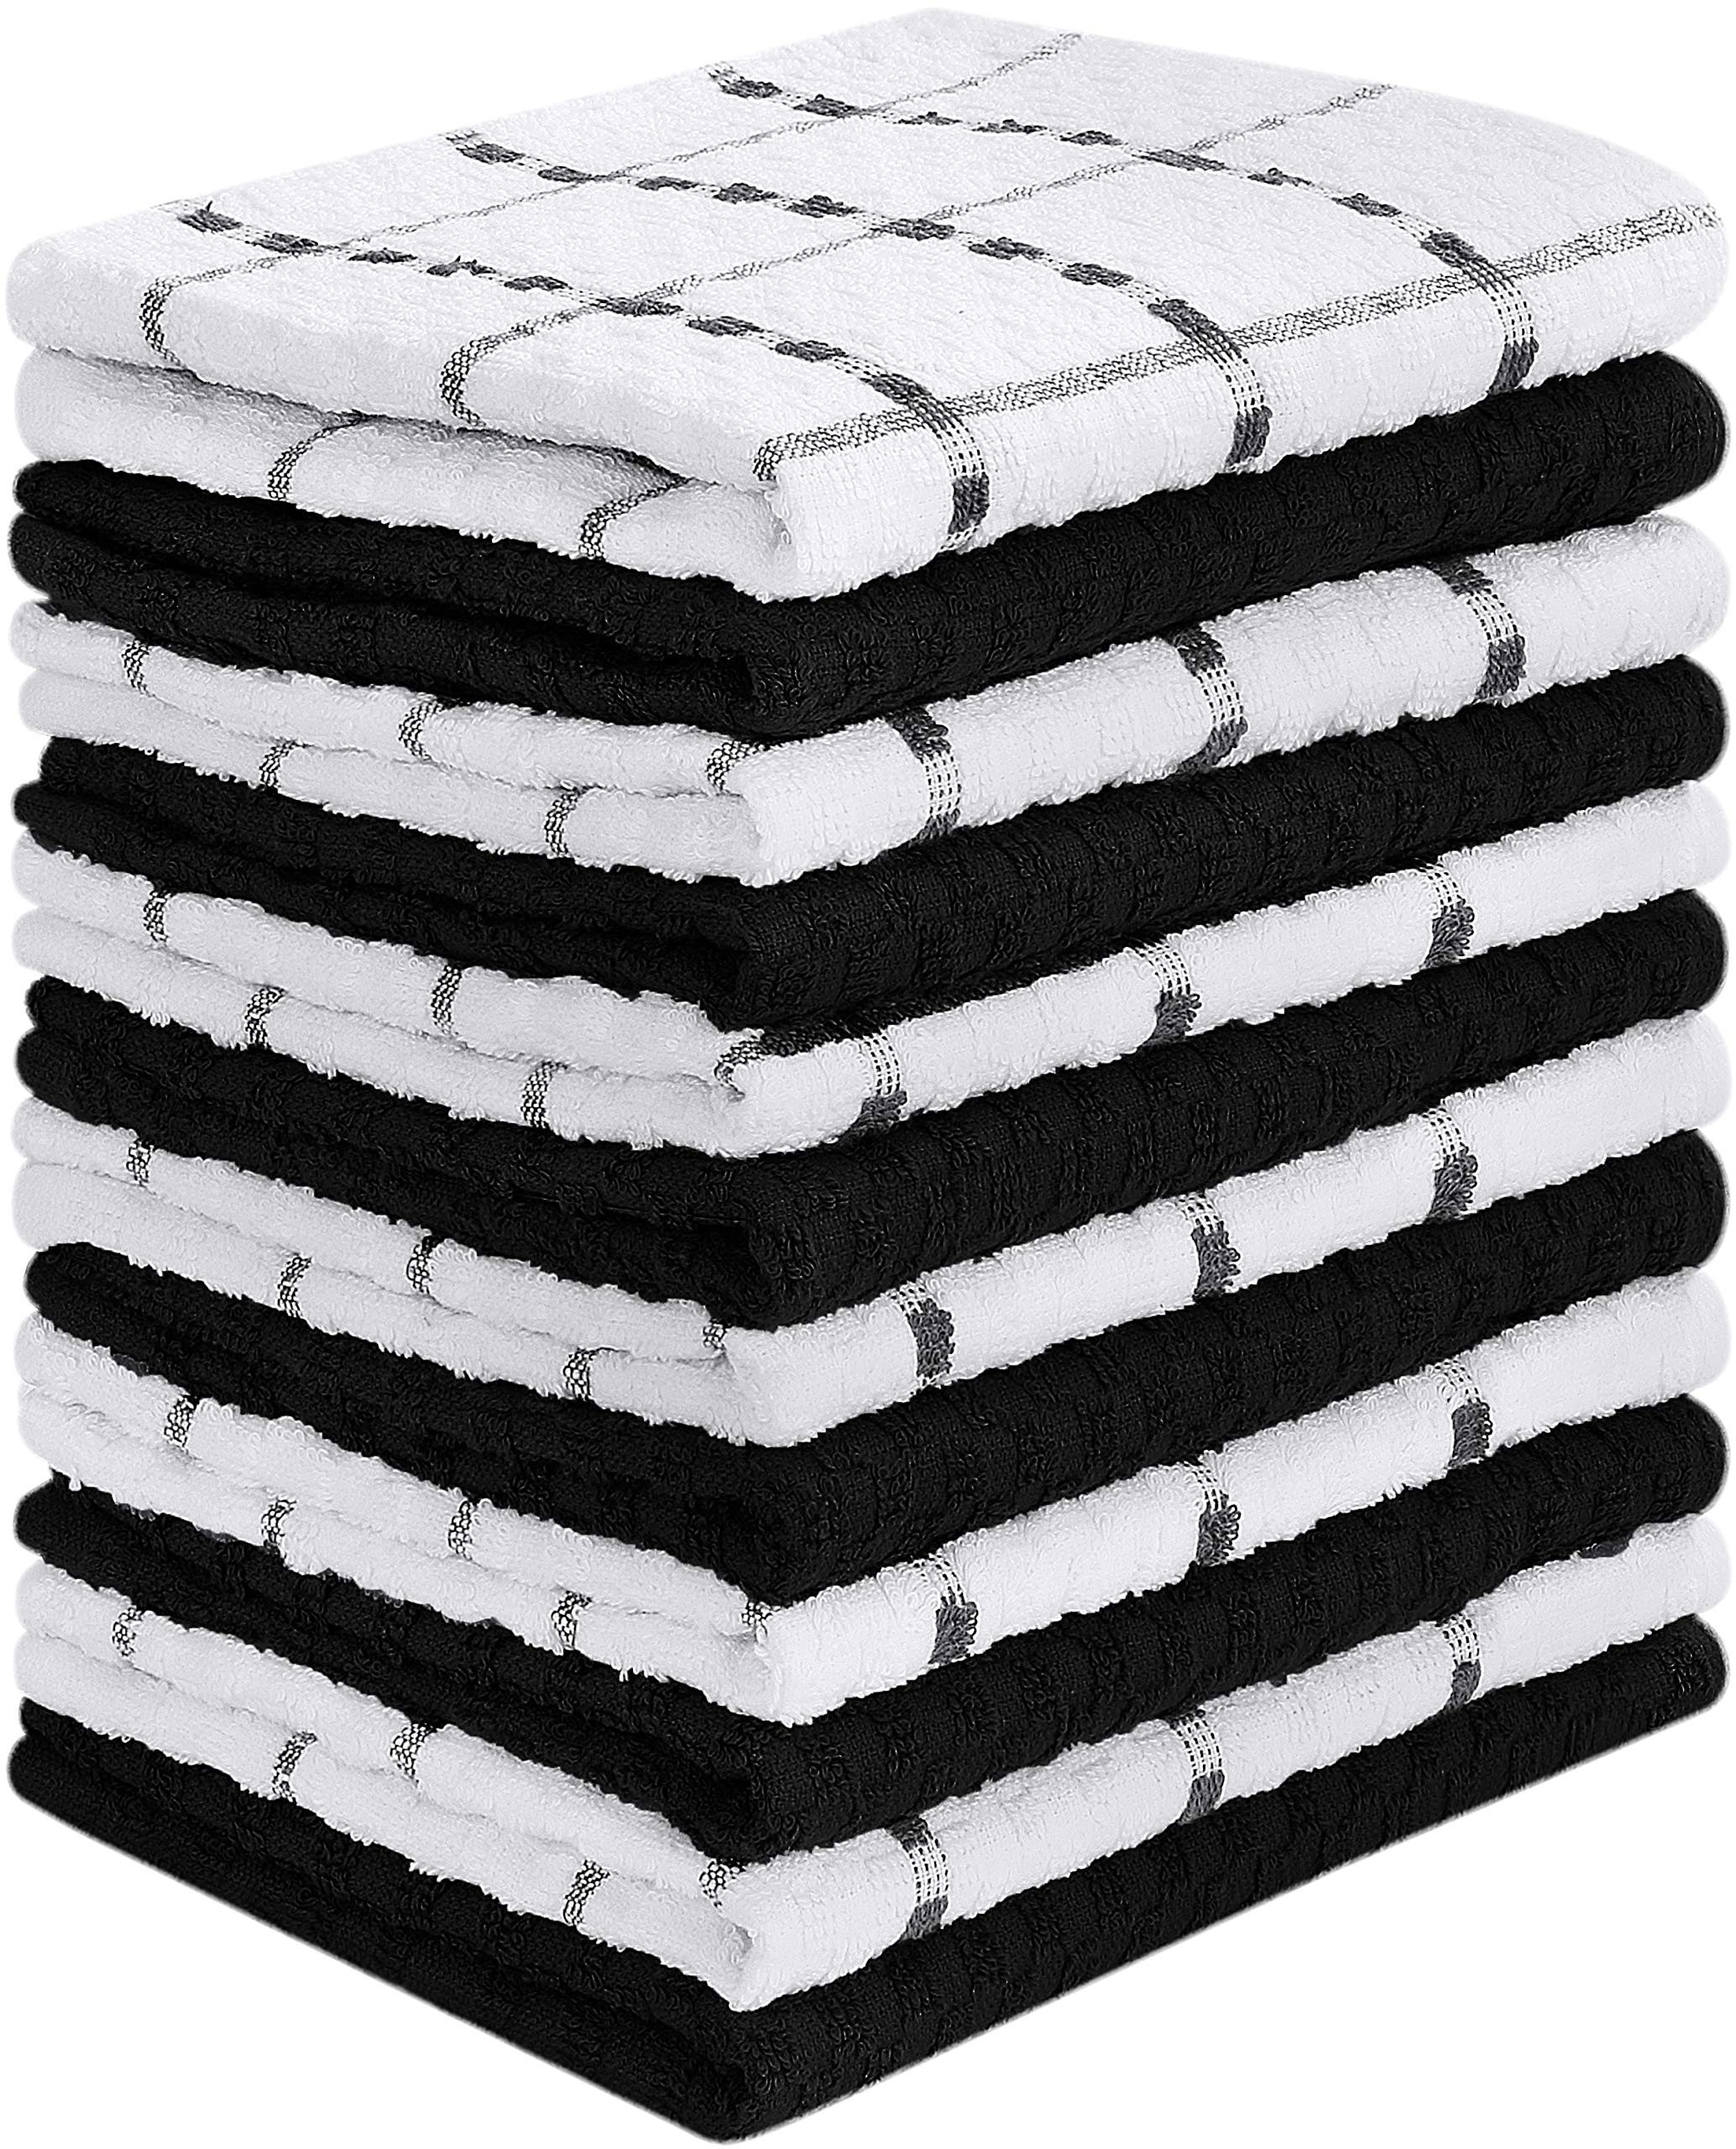 Utopia Towels 12 Pack Kitchen Towels, 15 x 25 Inches Cotton Dish Towels, Tea Towels and Bar Towels by Utopia Towels